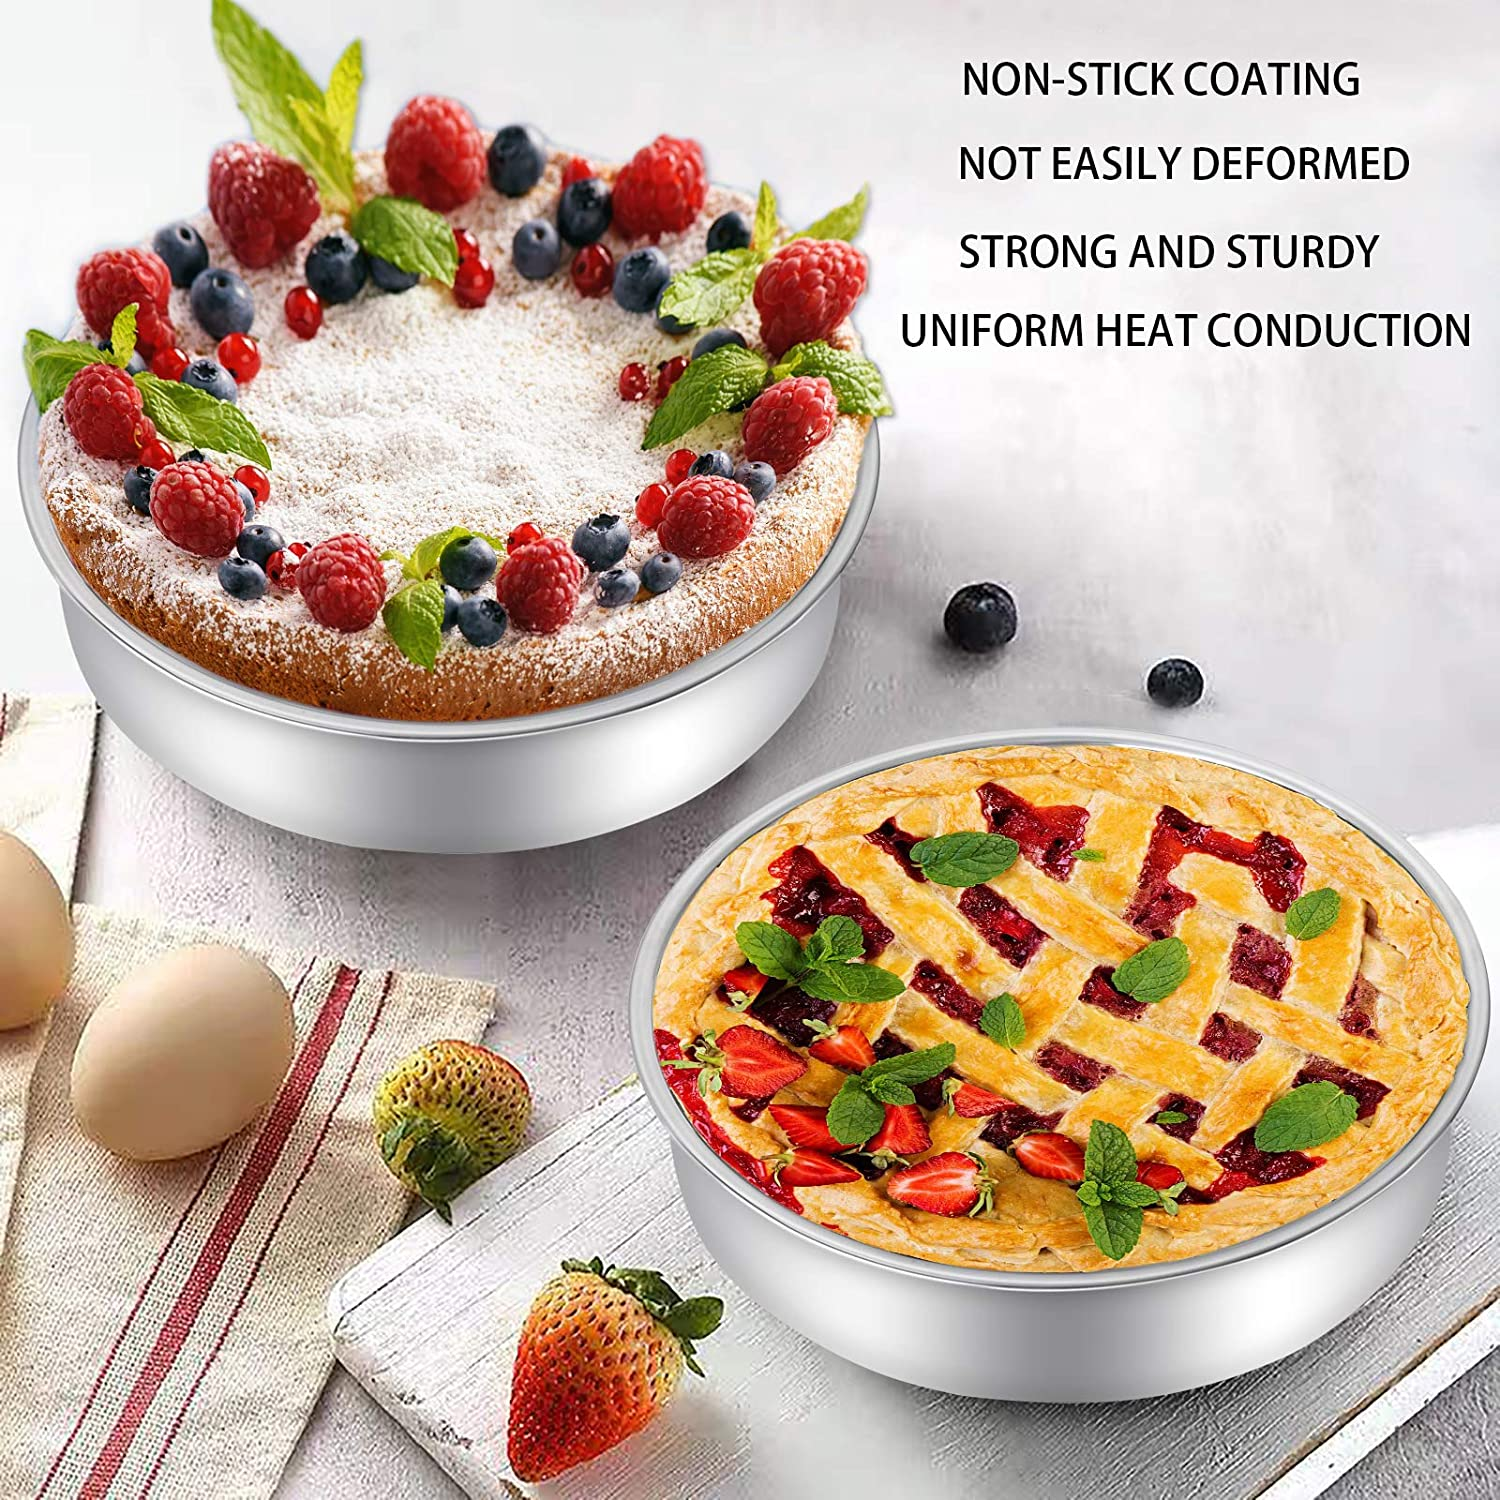 Non-Stick /& Quick Release Heavy Duty /& Even-Heating Set of 3 by AIKKIL Cake Pans 6,8,10 Inch 2Deep Stainless Steel Round Cake Tary,Baking Cake Pan Set